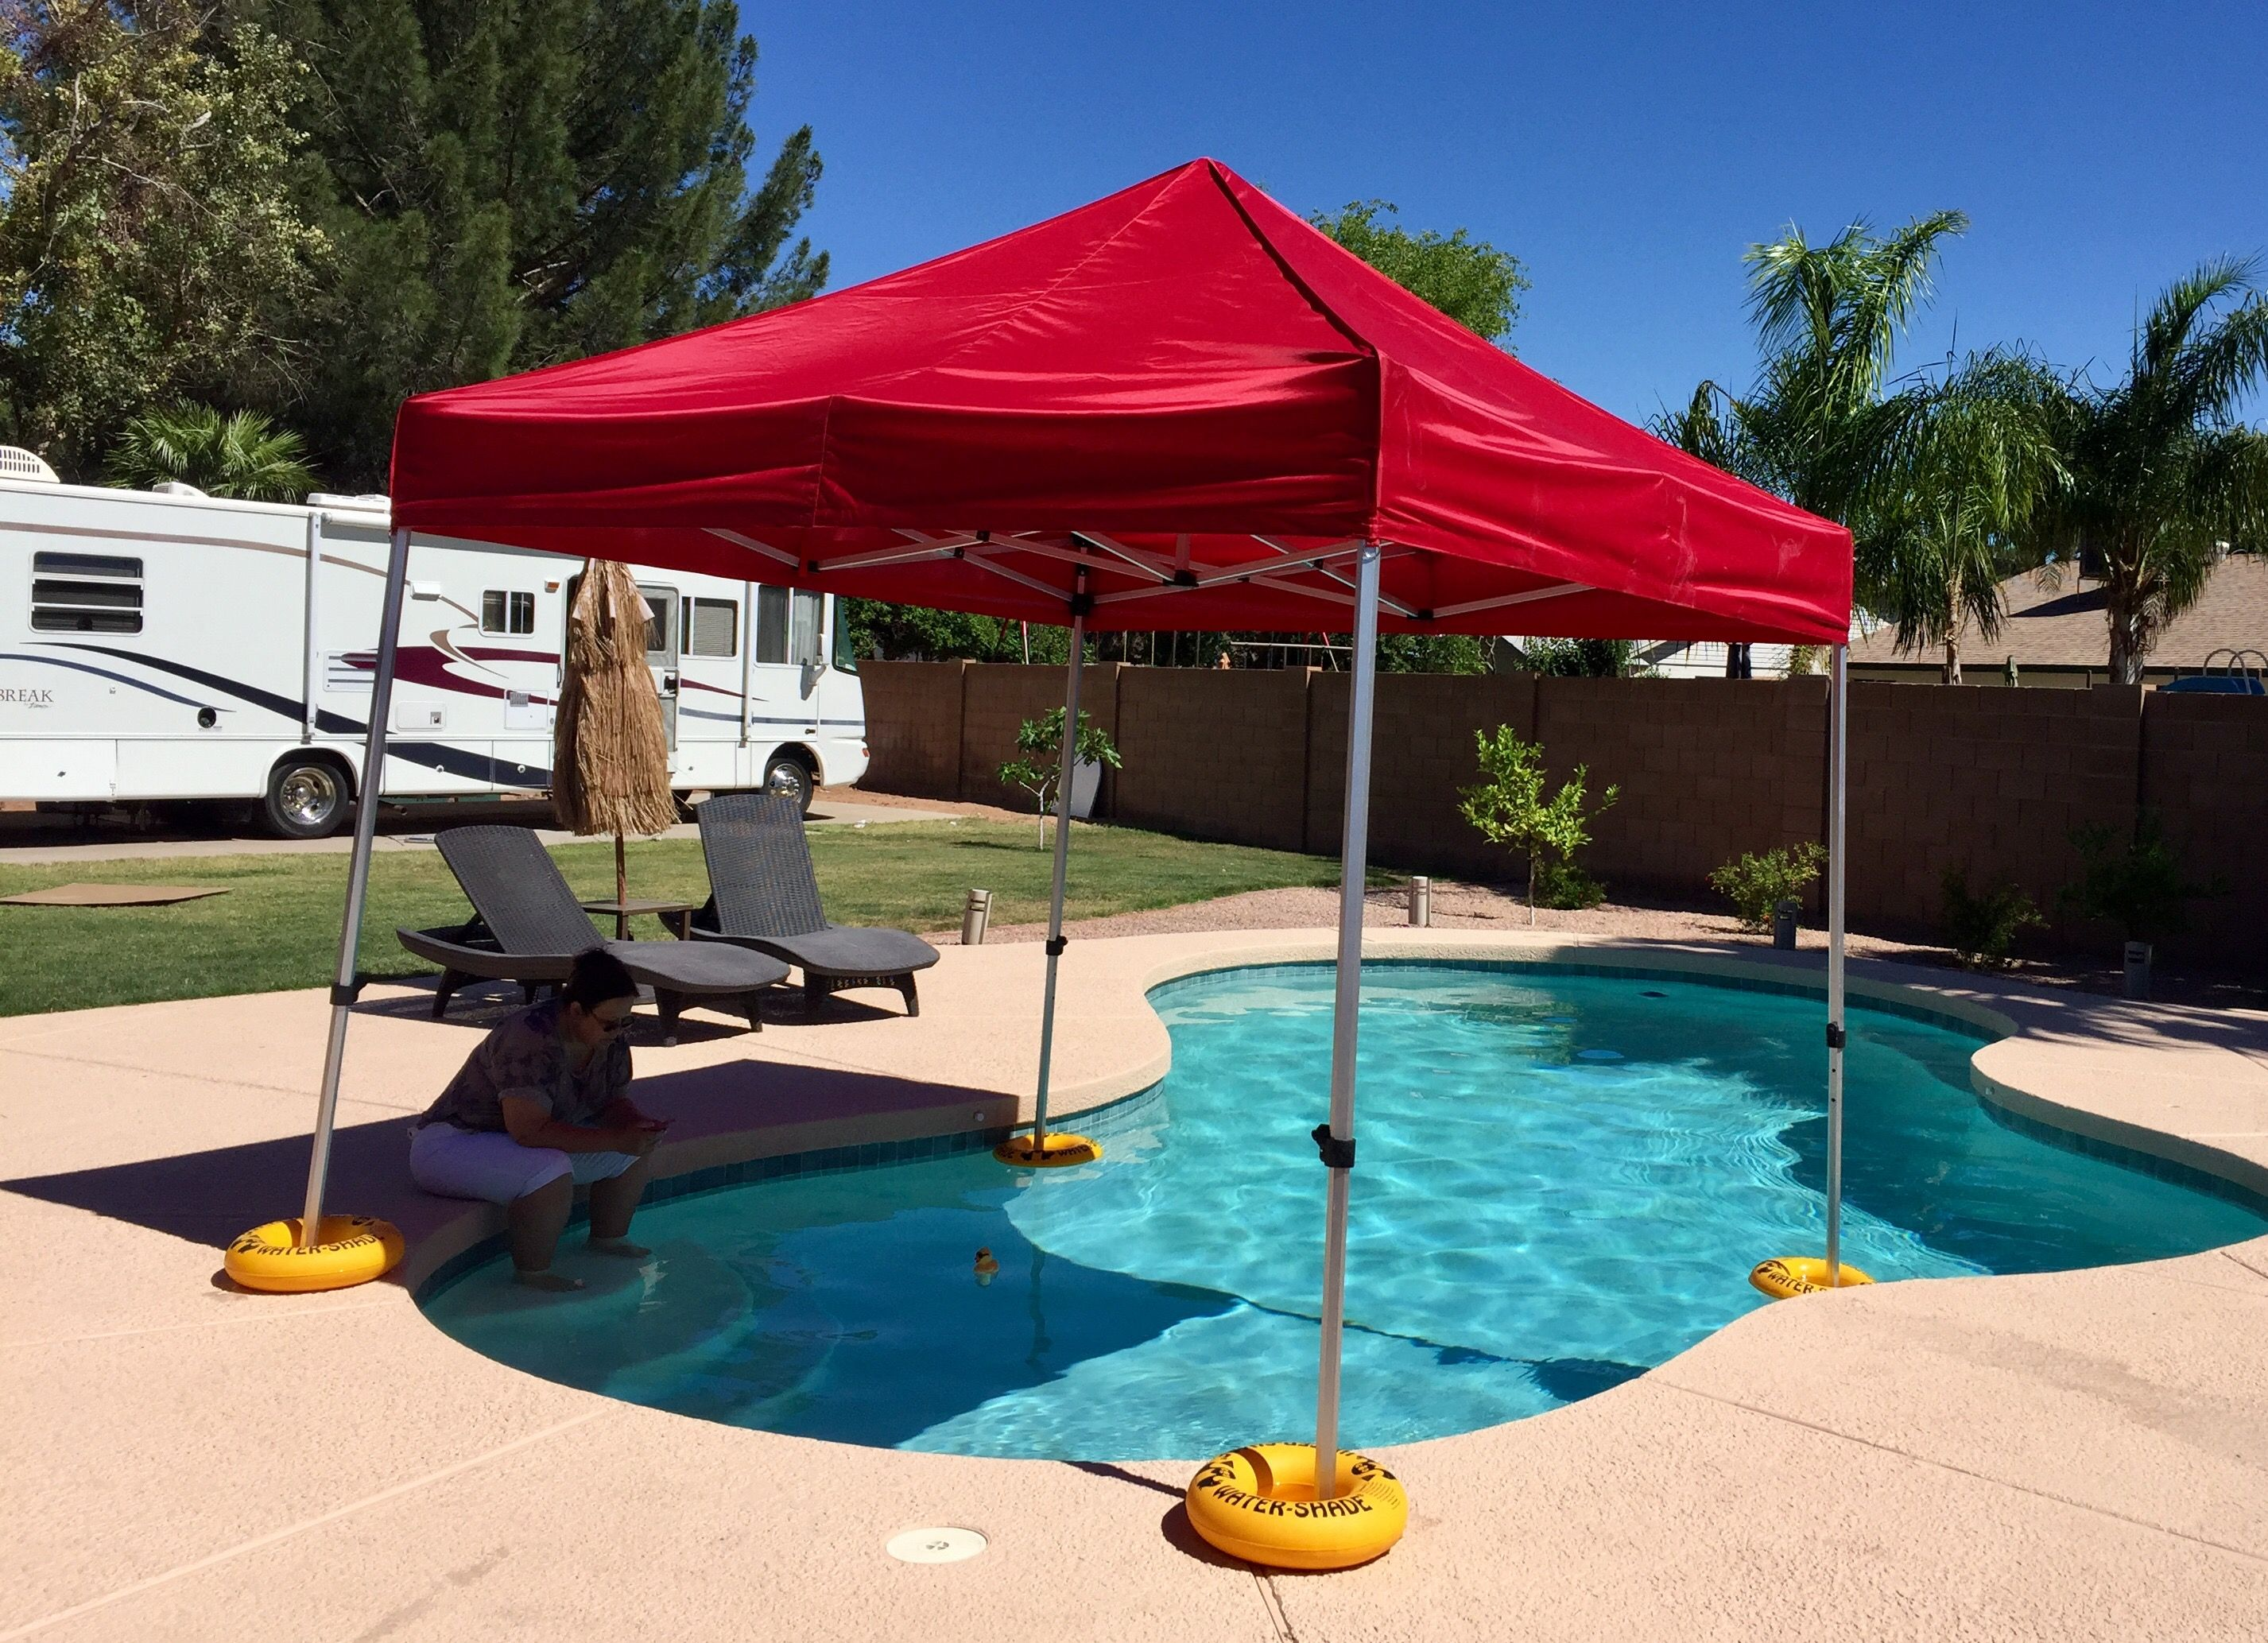 The New Water Shade Canopy Floating Kit Can Take Your Canopy Where Umbrellas Awnings Or Shelters Can T Directly Onto The Wa Pool Shade Floating Canopy Canopy